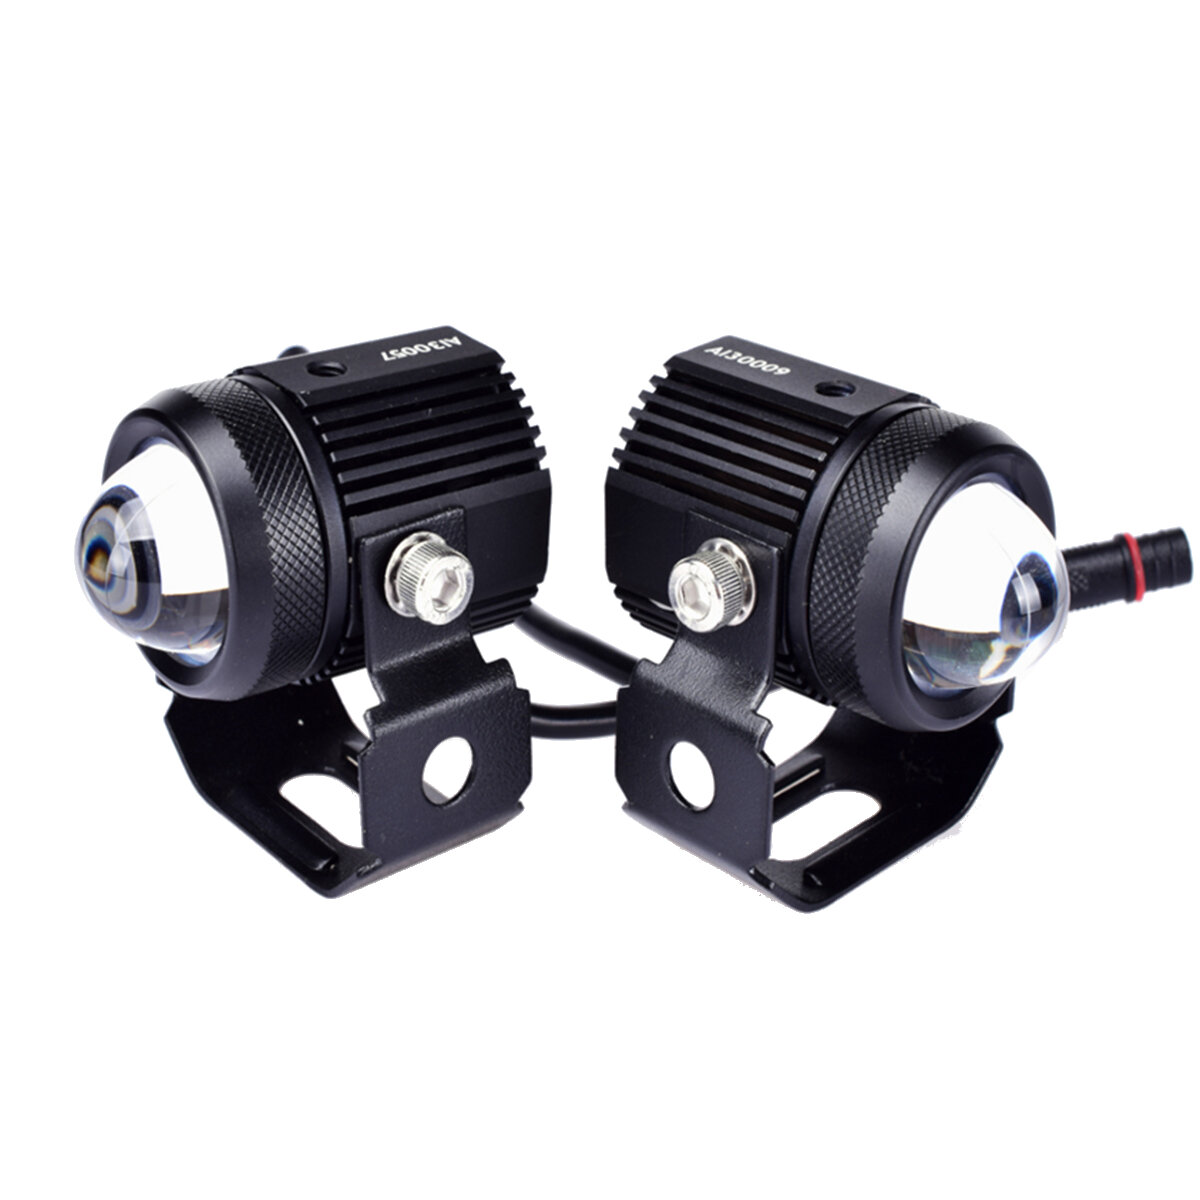 9V-24V 15W BA20D LED Headlights Work Fog Light Hi/Low Beam Dual Color H4 T19 Waterproof For Motorcycle ATV SUV Tractor Yacht Boat Truck Car